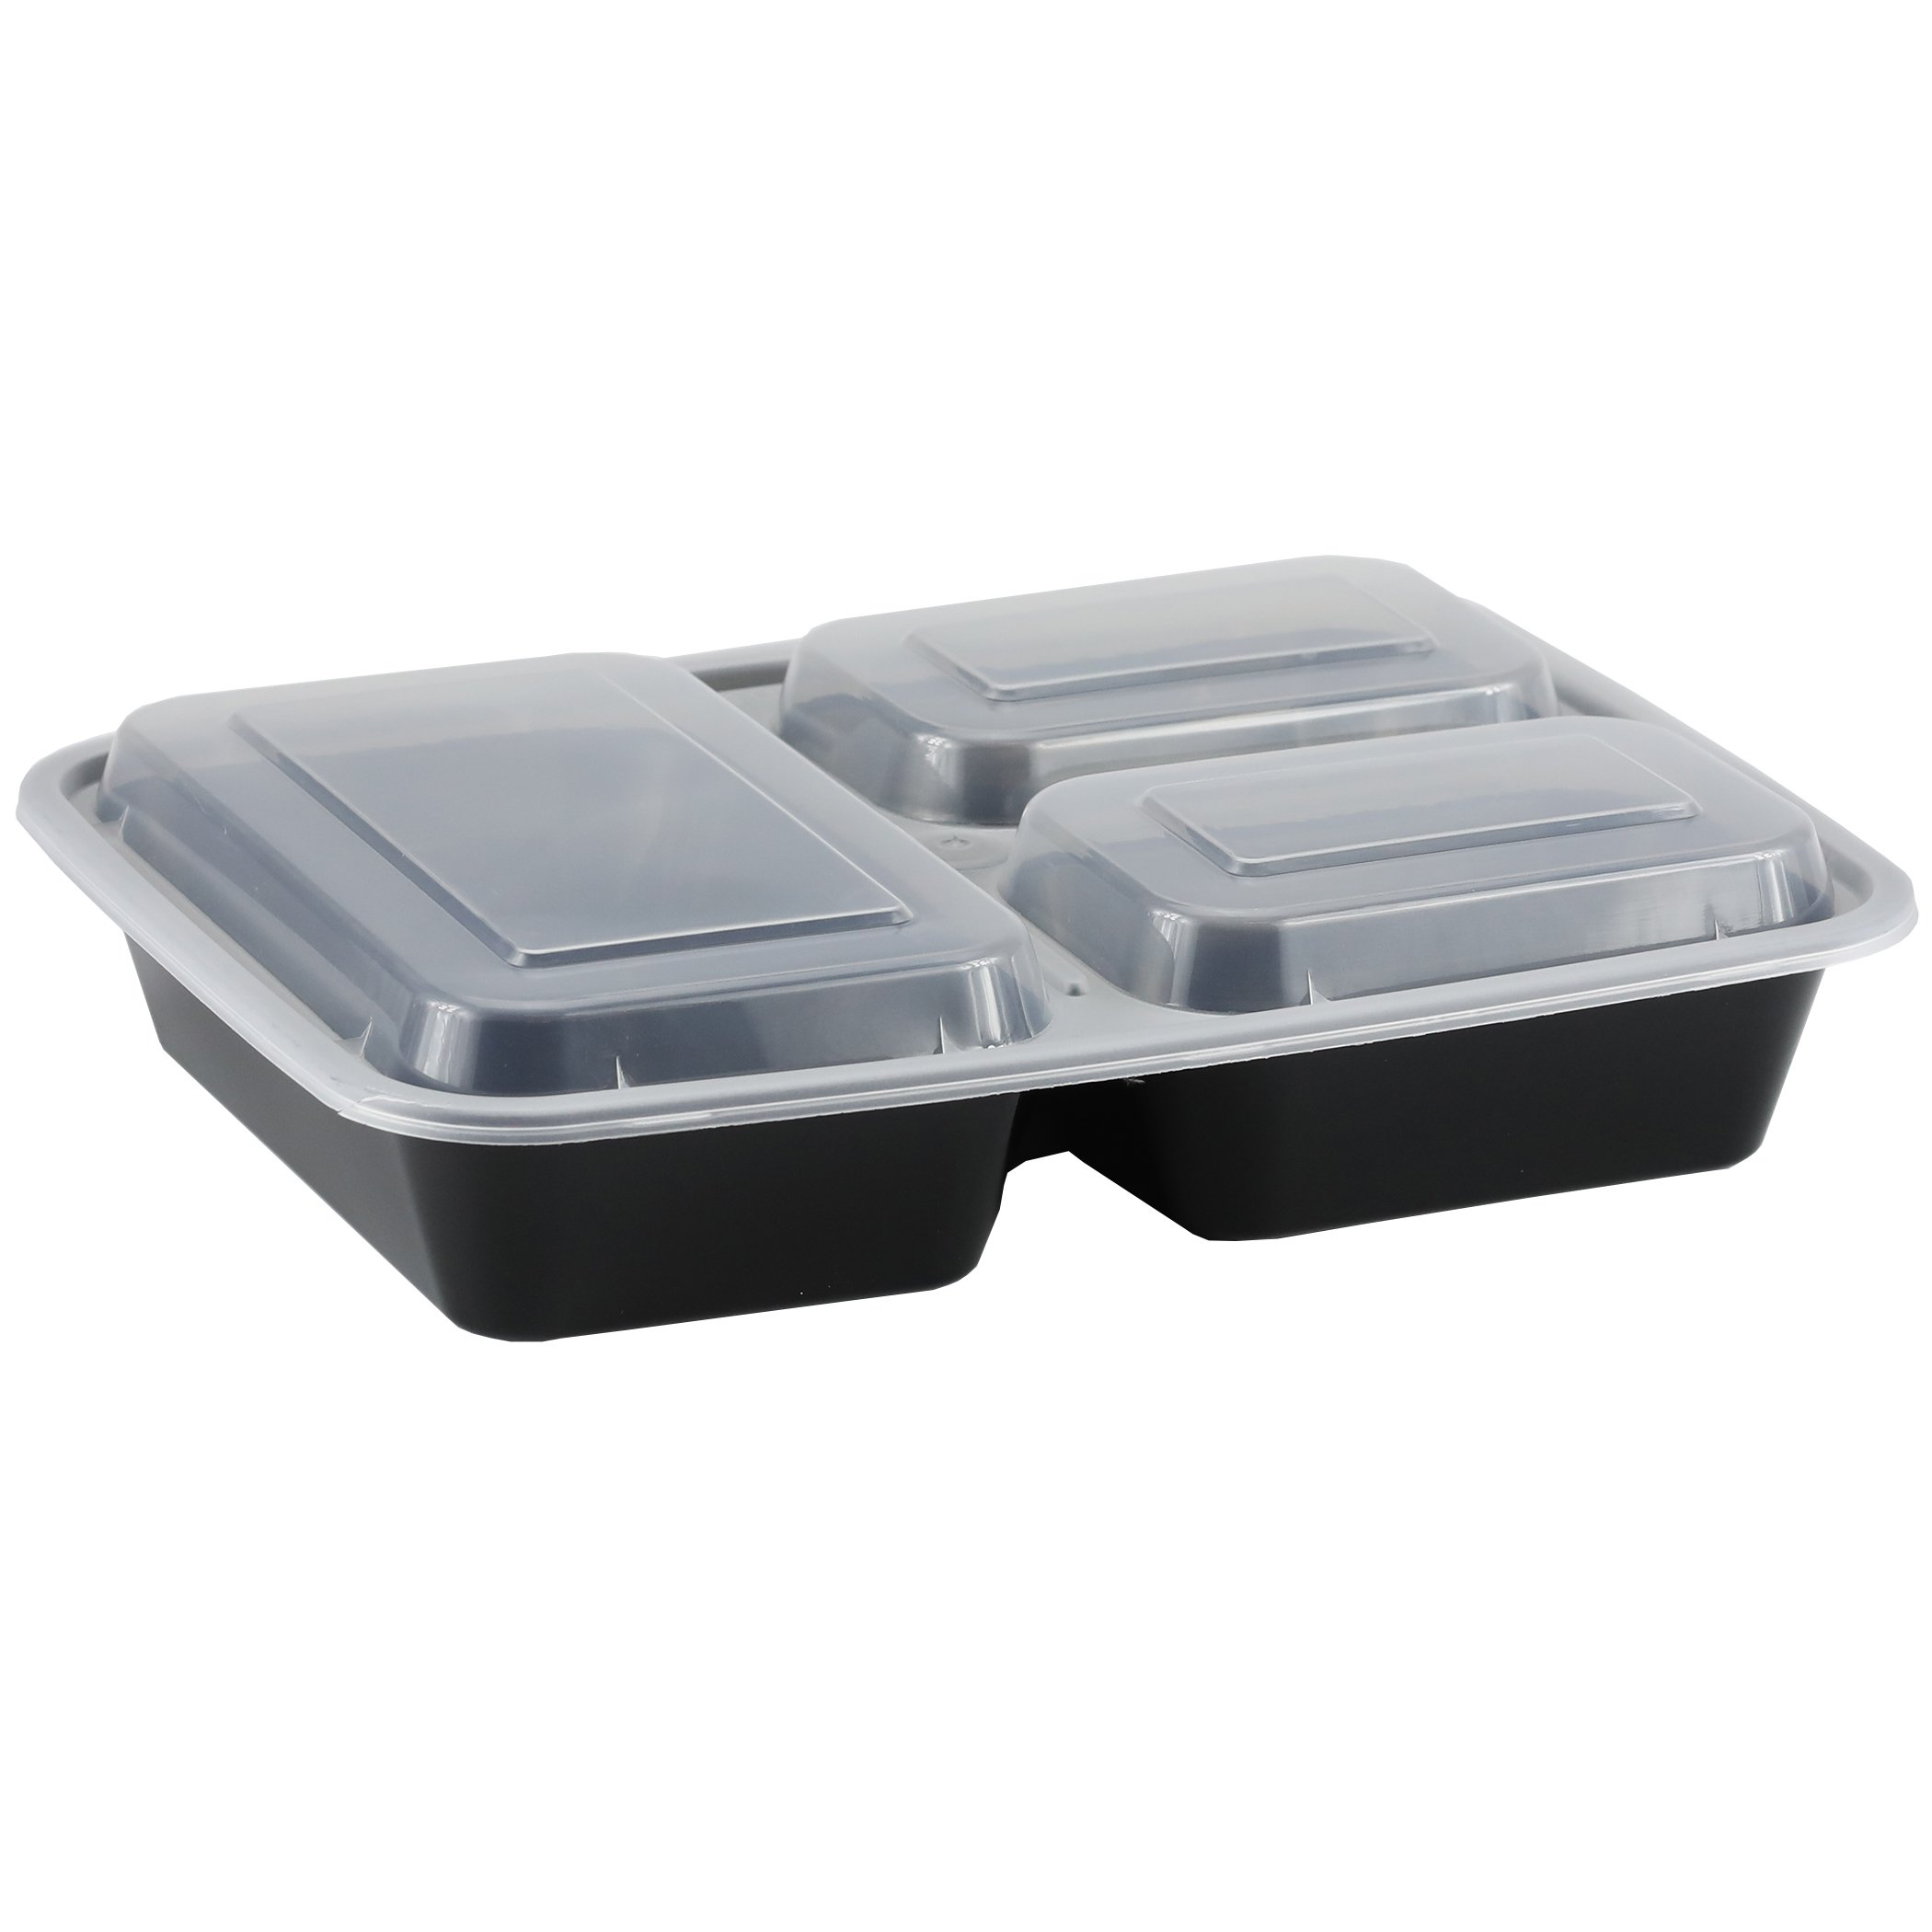 Simply Deliver Rectangular 3-Compartment Container with Lid, Microwavable, Black, 150-Count